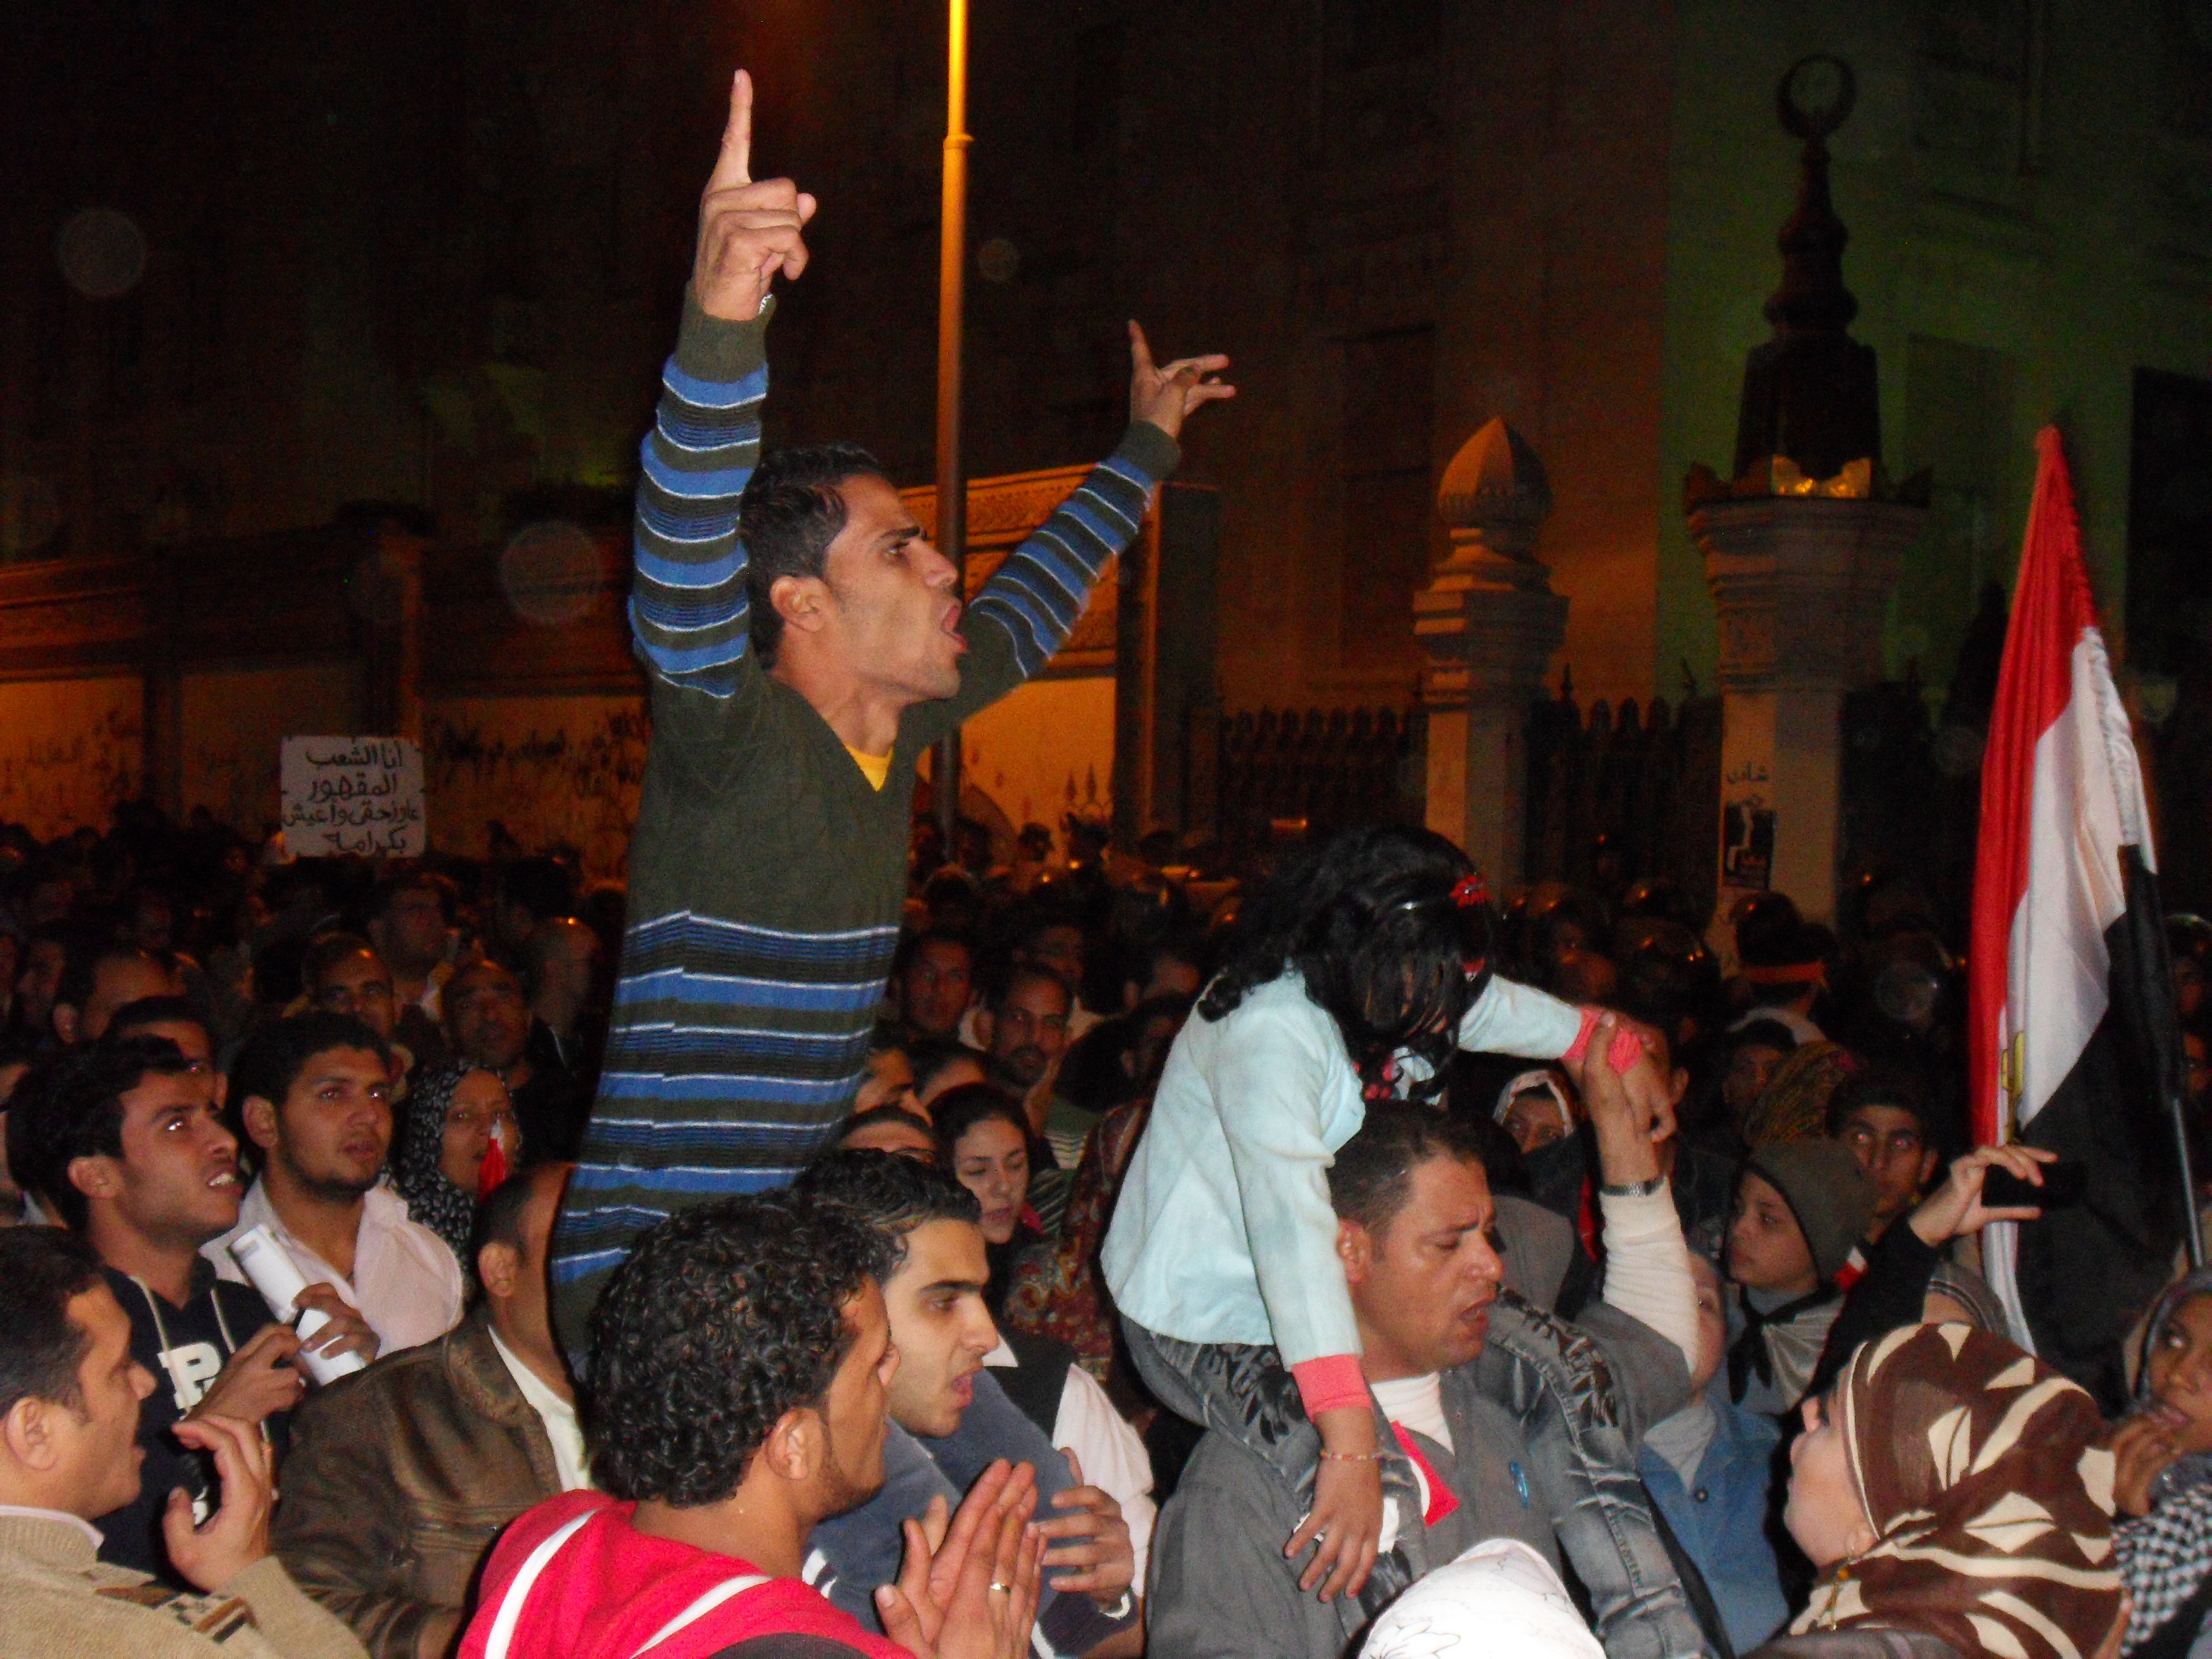 A man riling up the crowd against Morsi in front of the Palace's entrance.